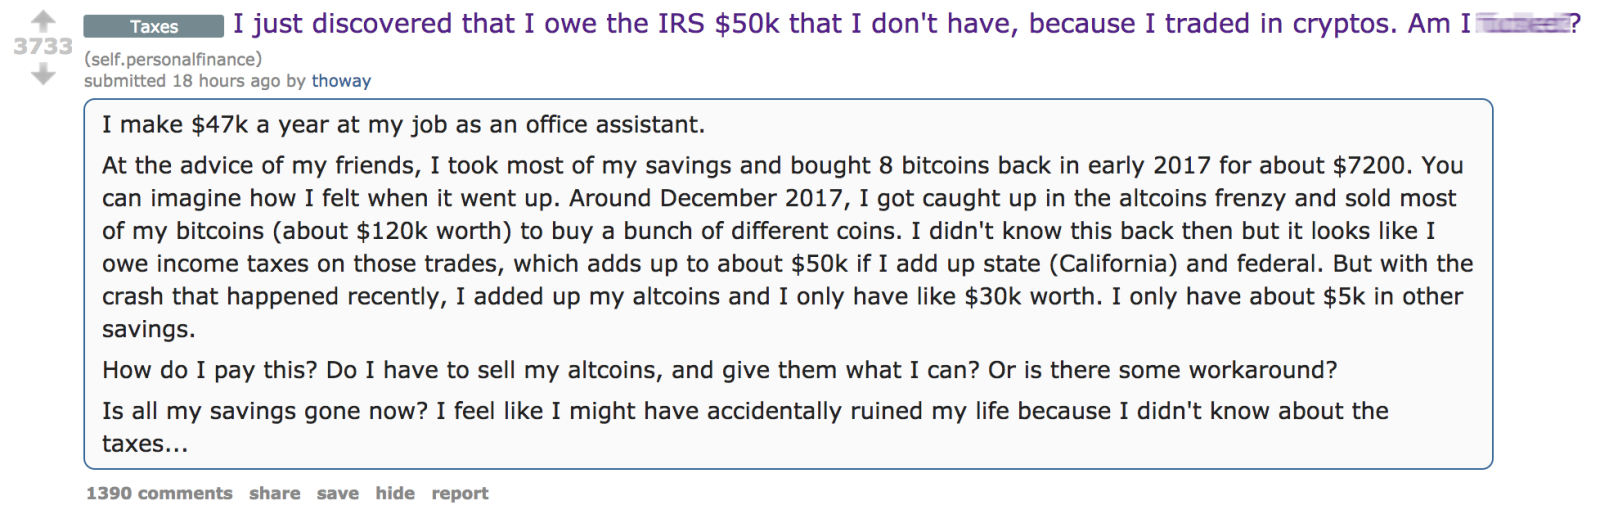 Invested in Bitcoin? You May Owe the IRS Money You Don't Have